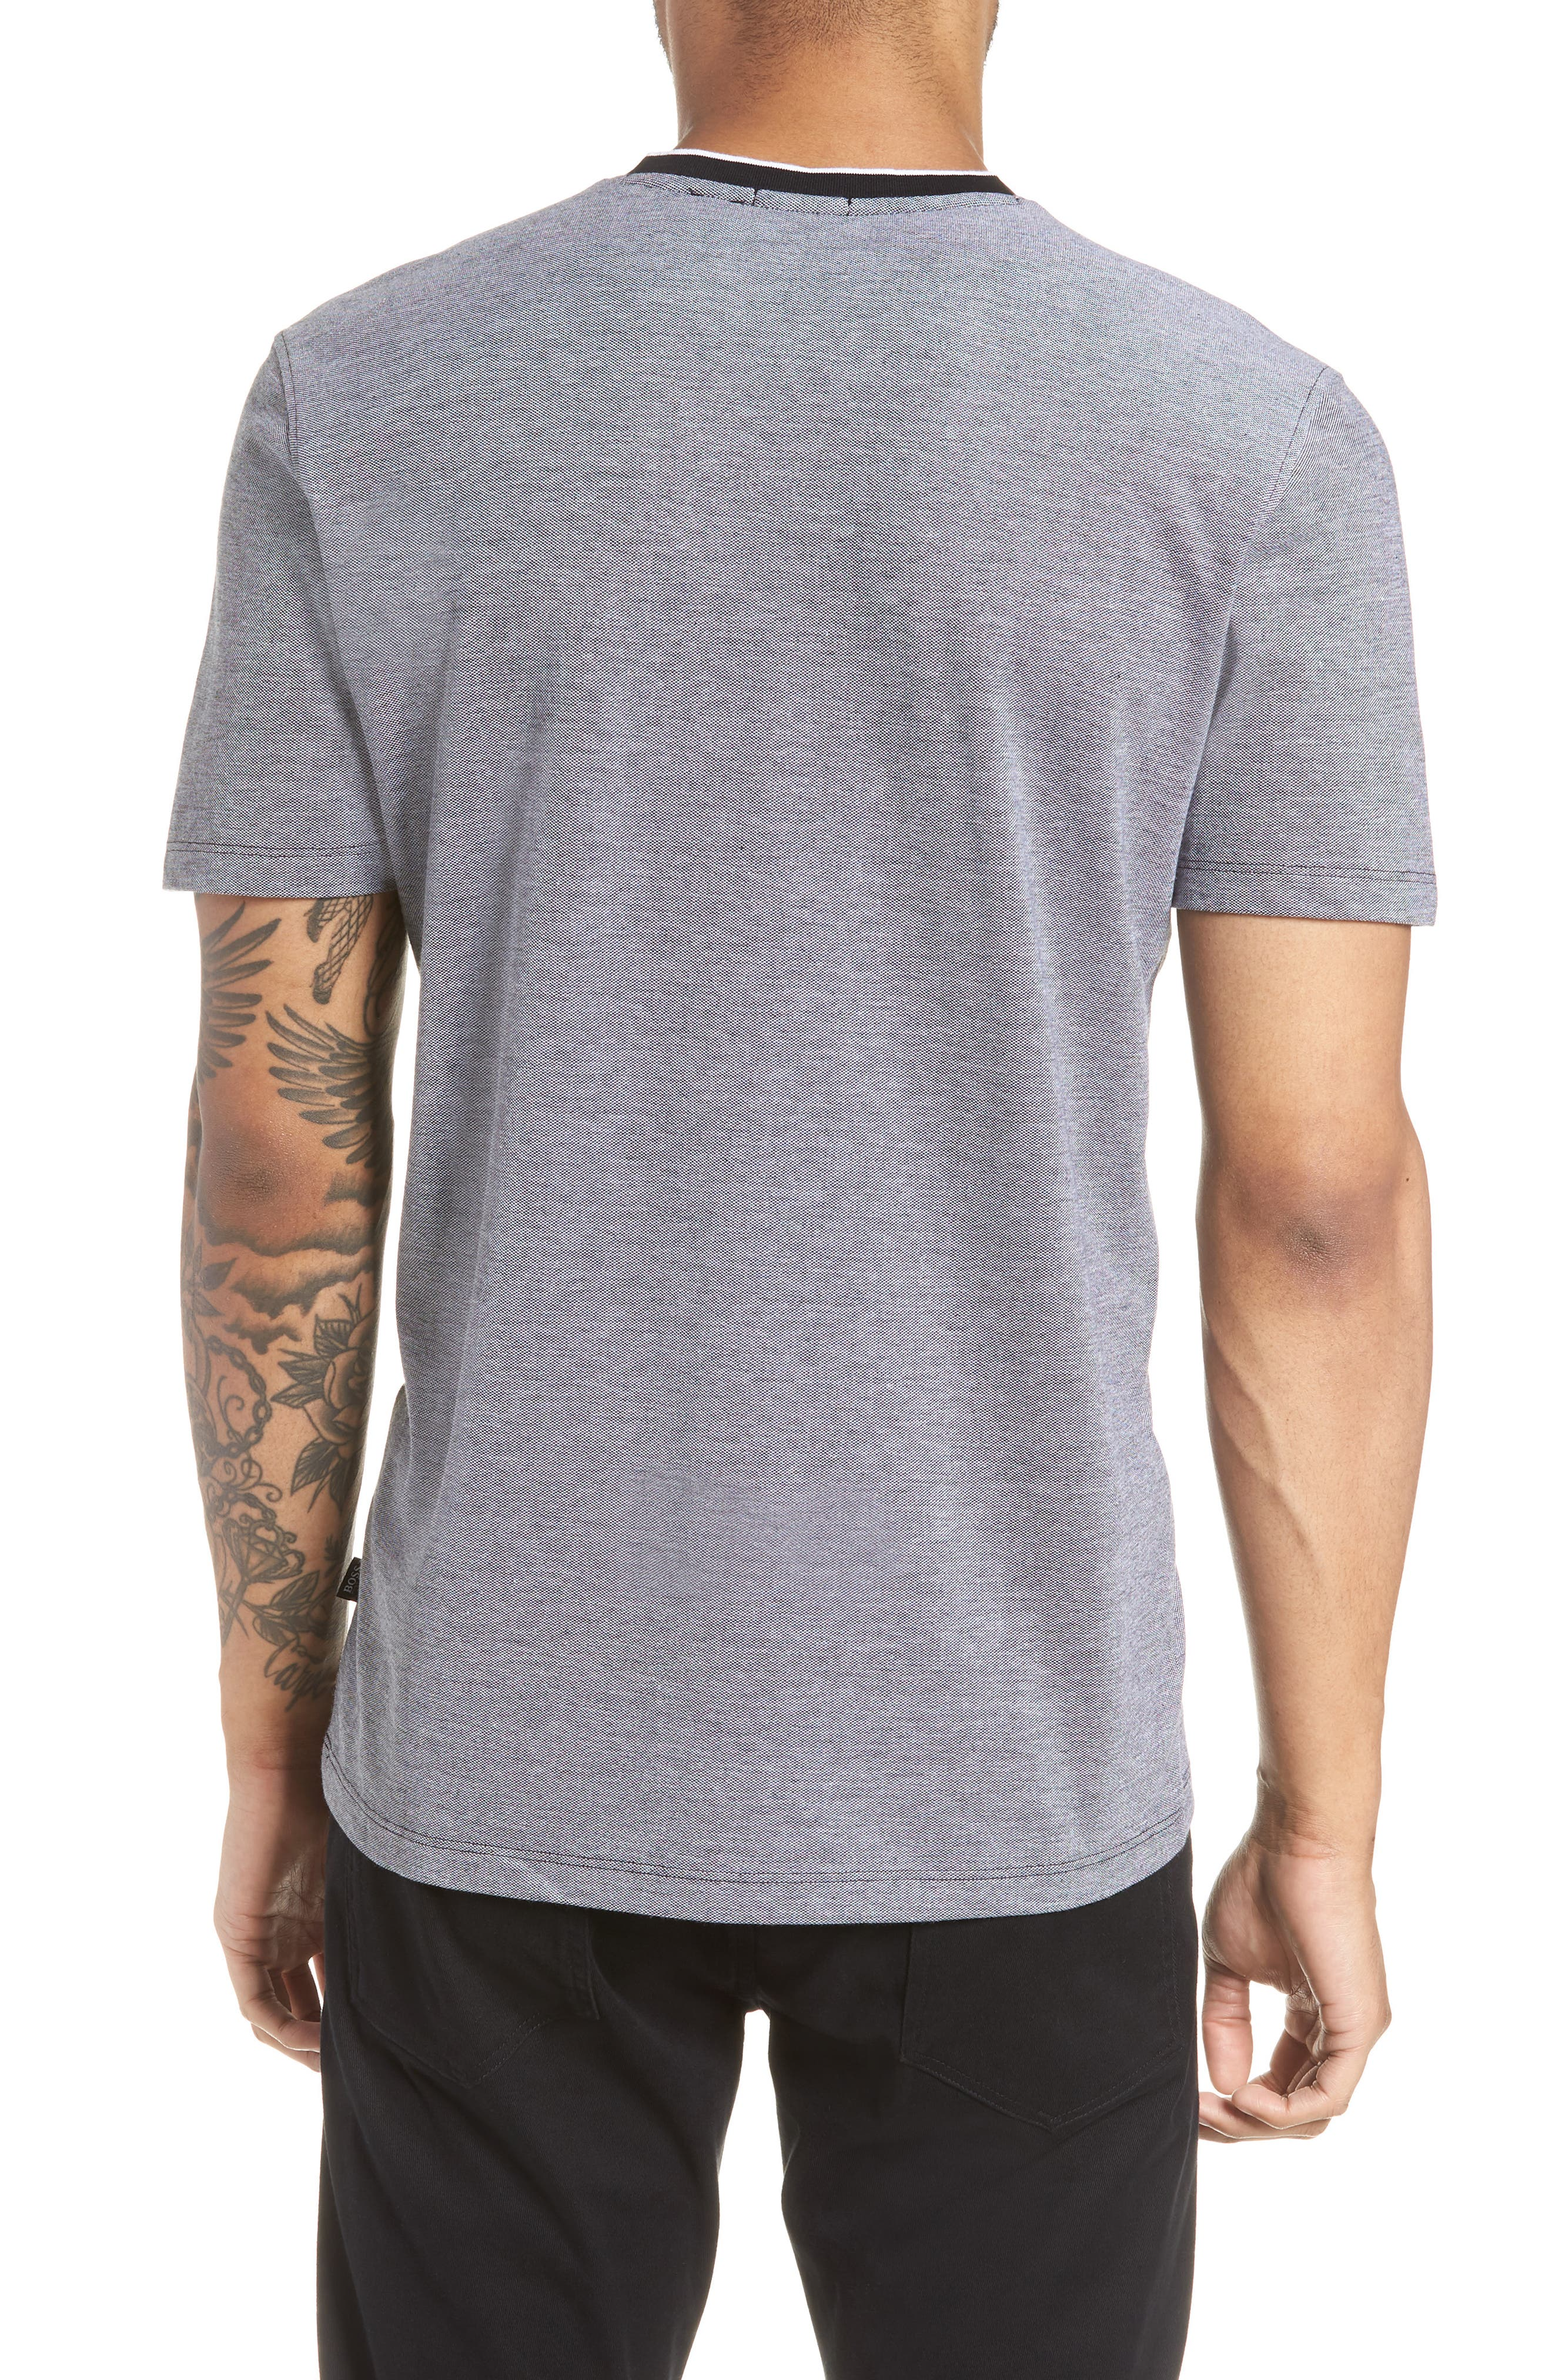 TIlson Regular Fit T-Shirt,                             Alternate thumbnail 2, color,                             001